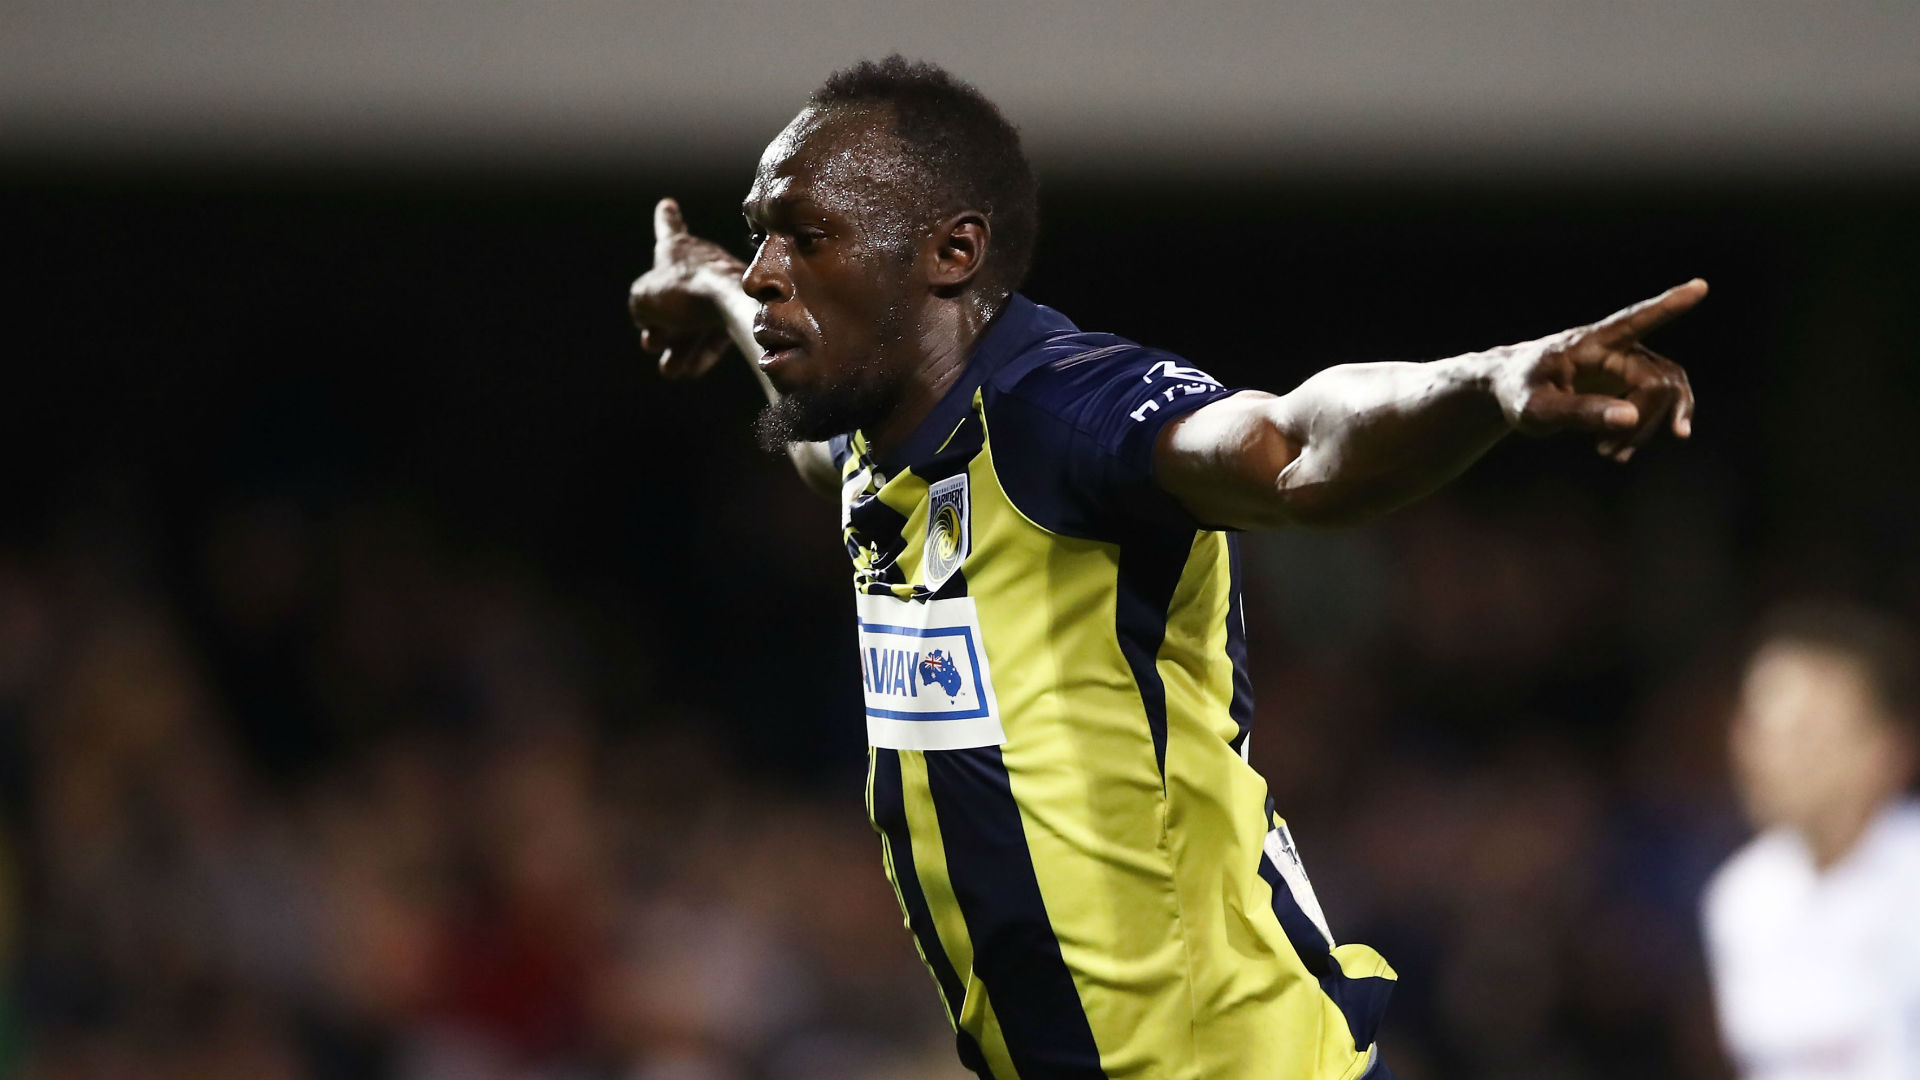 Usain Bolt scores twice on first start for Australia's Central Coast Mariners